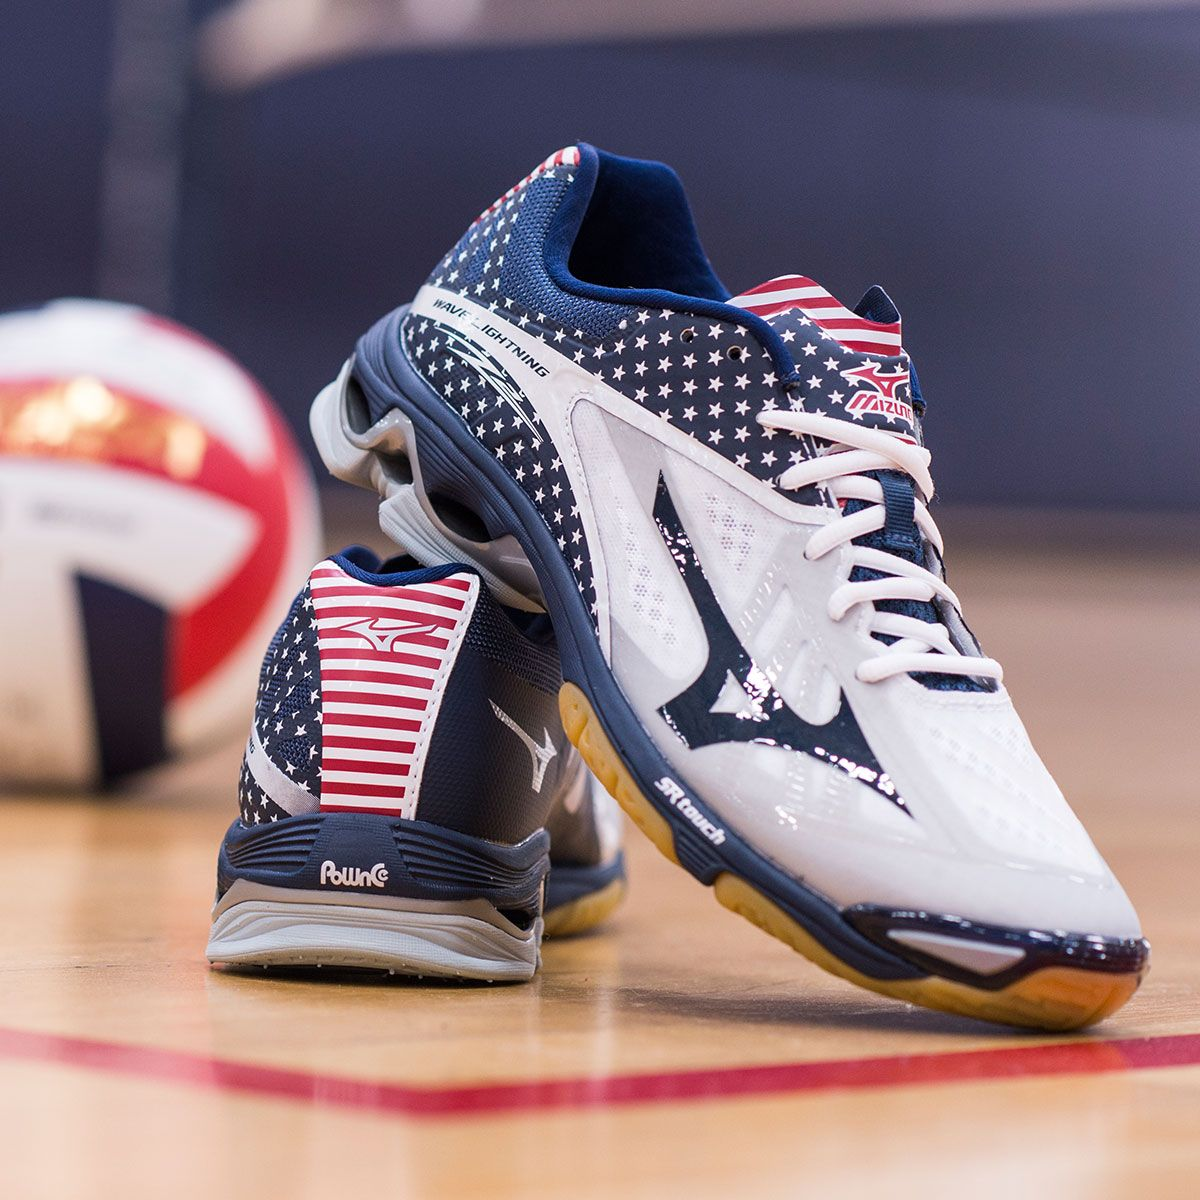 Rep Your Country And Dominate The Court In The Shoes Of The Elite Mizuno Wave Lightning Z2 Stars And Volleyball Shoes Volleyball Sneakers Mizuno Volleyball